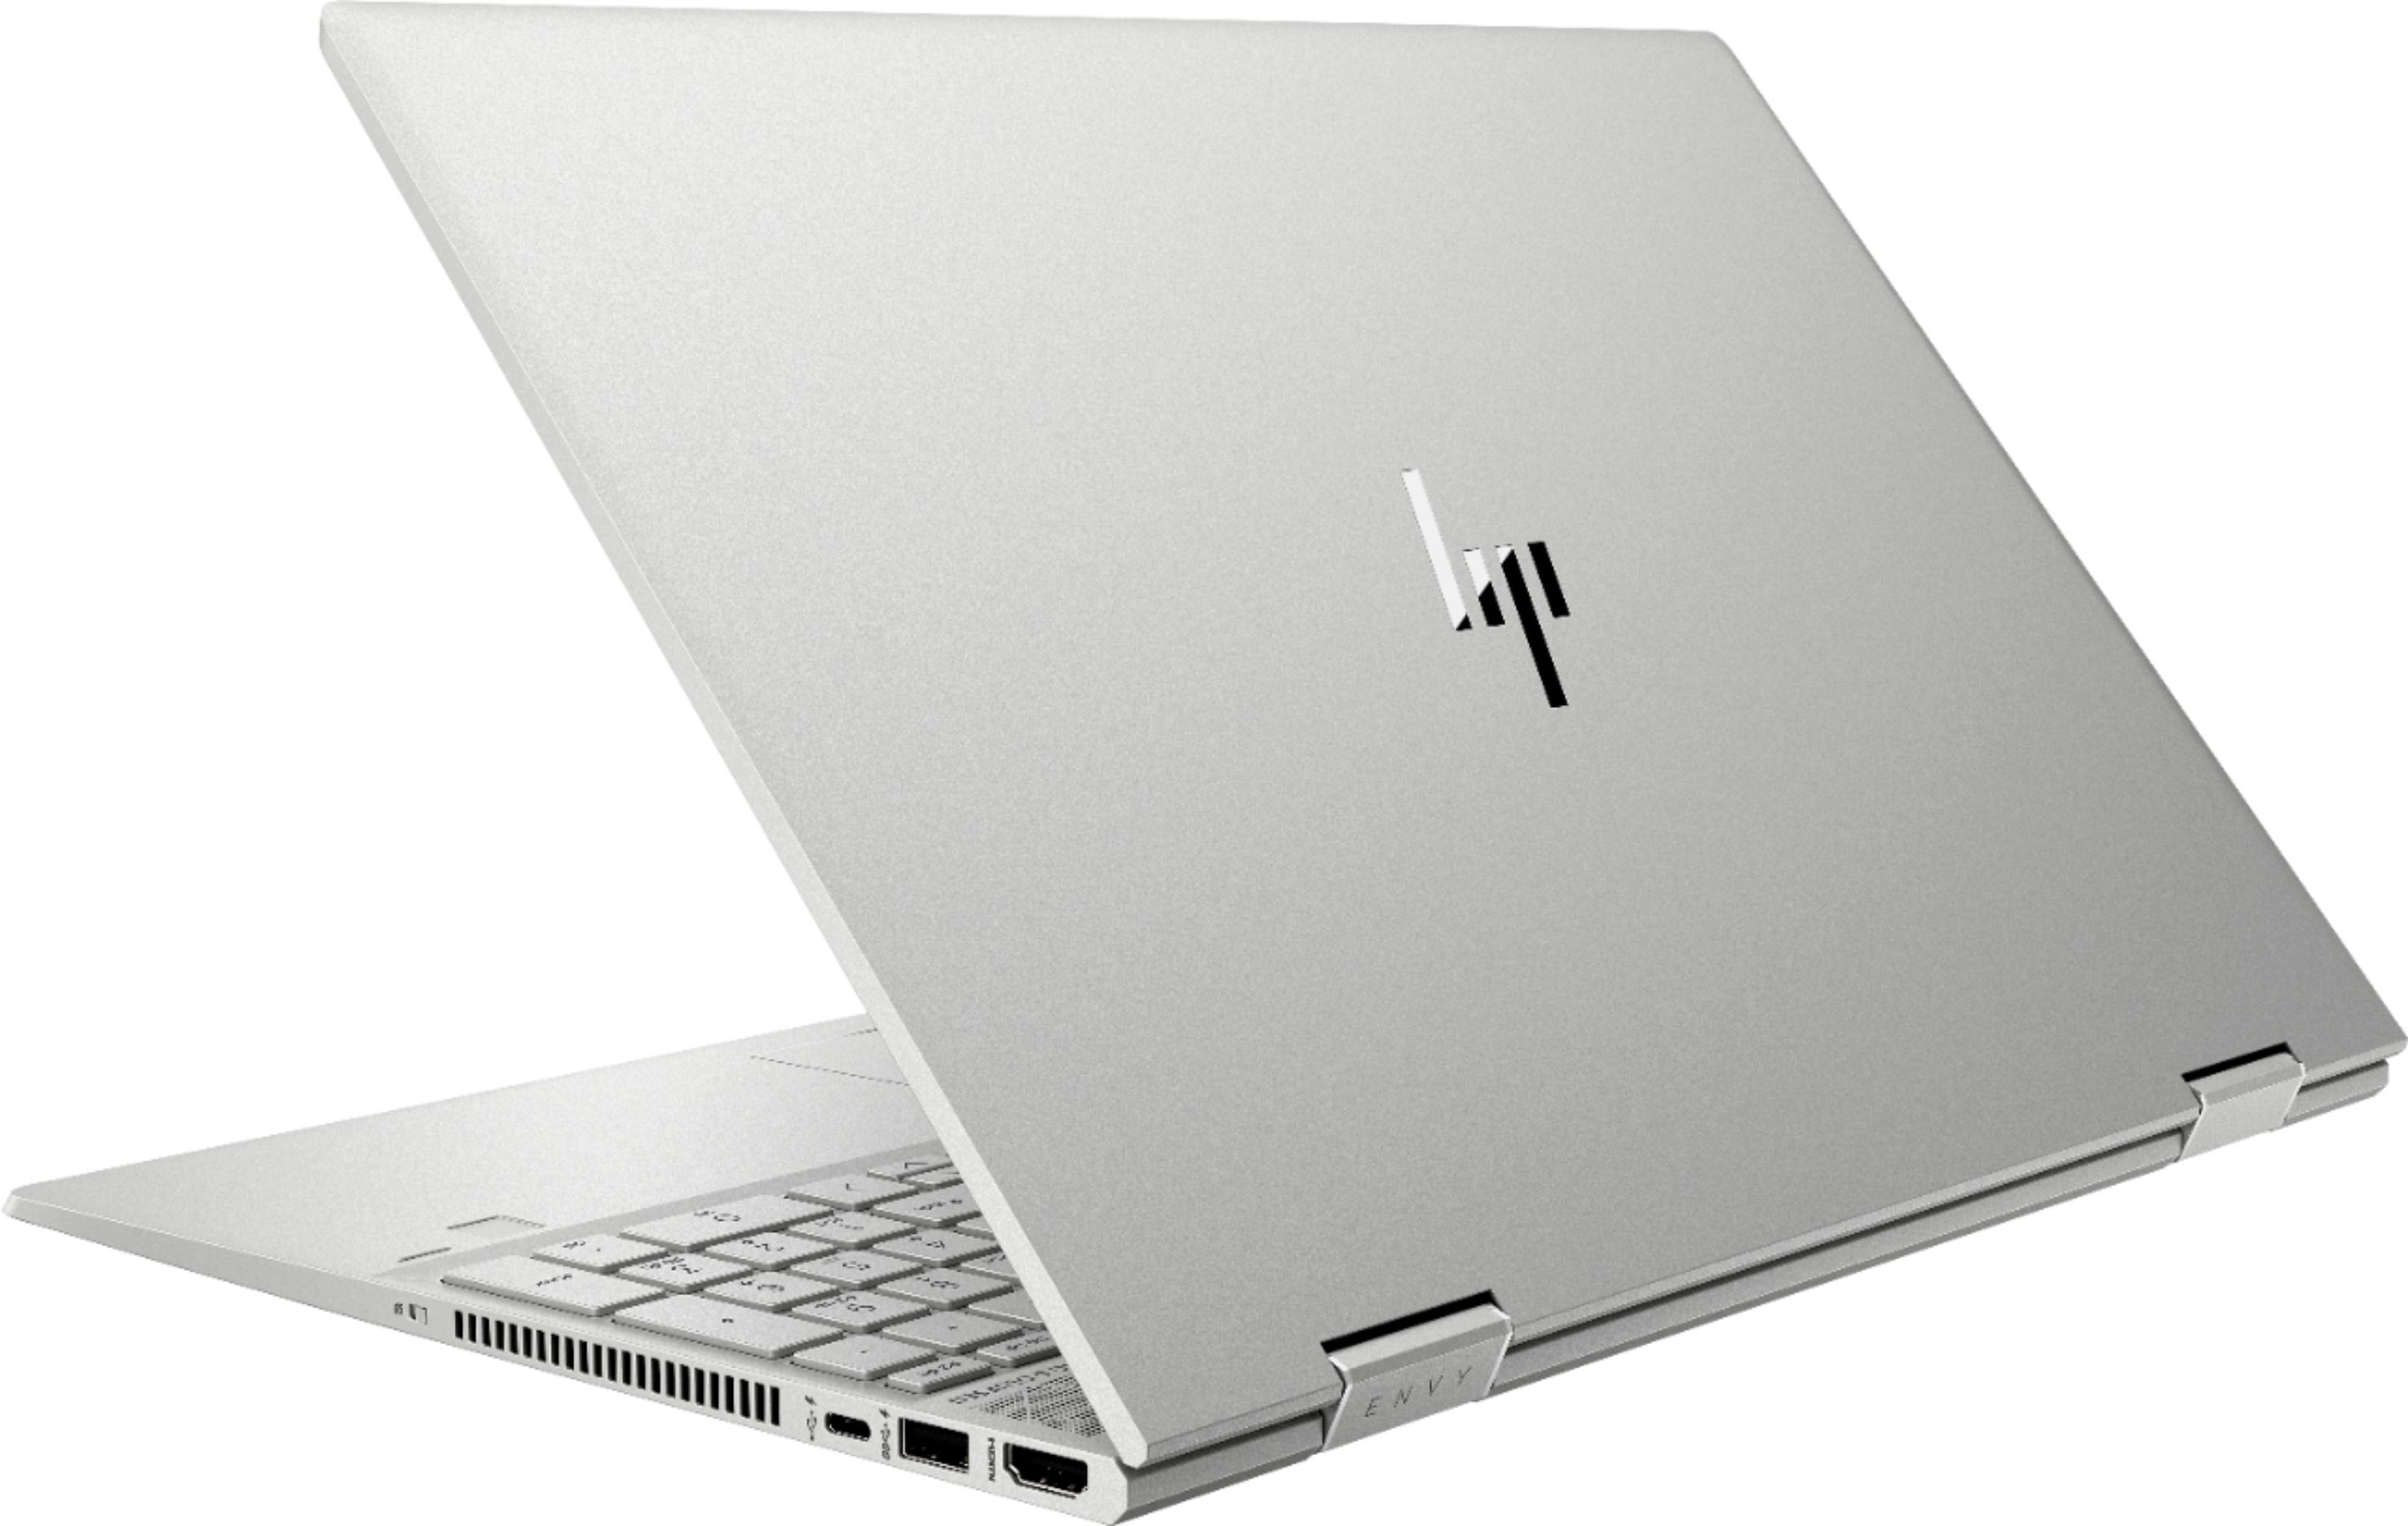 """Alt View Zoom 1. HP - ENVY x360 2-in-1 15.6"""" Touch-Screen Laptop - Intel Core i5 - 8GB Memory - 256GB Solid State Drive - Natural Silver, Sandblasted Anodized Finish."""